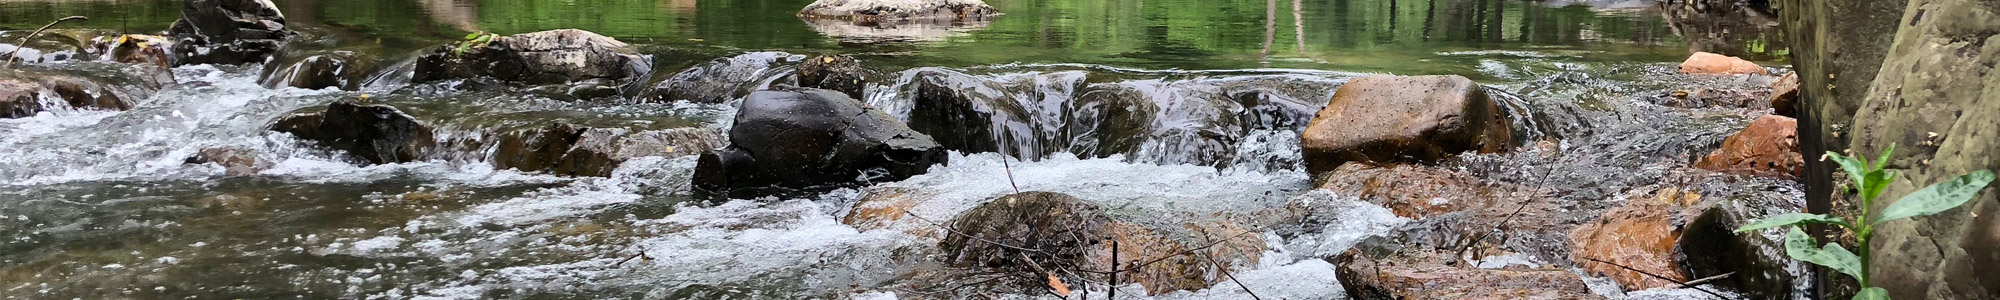 creekwater rushing over rocks